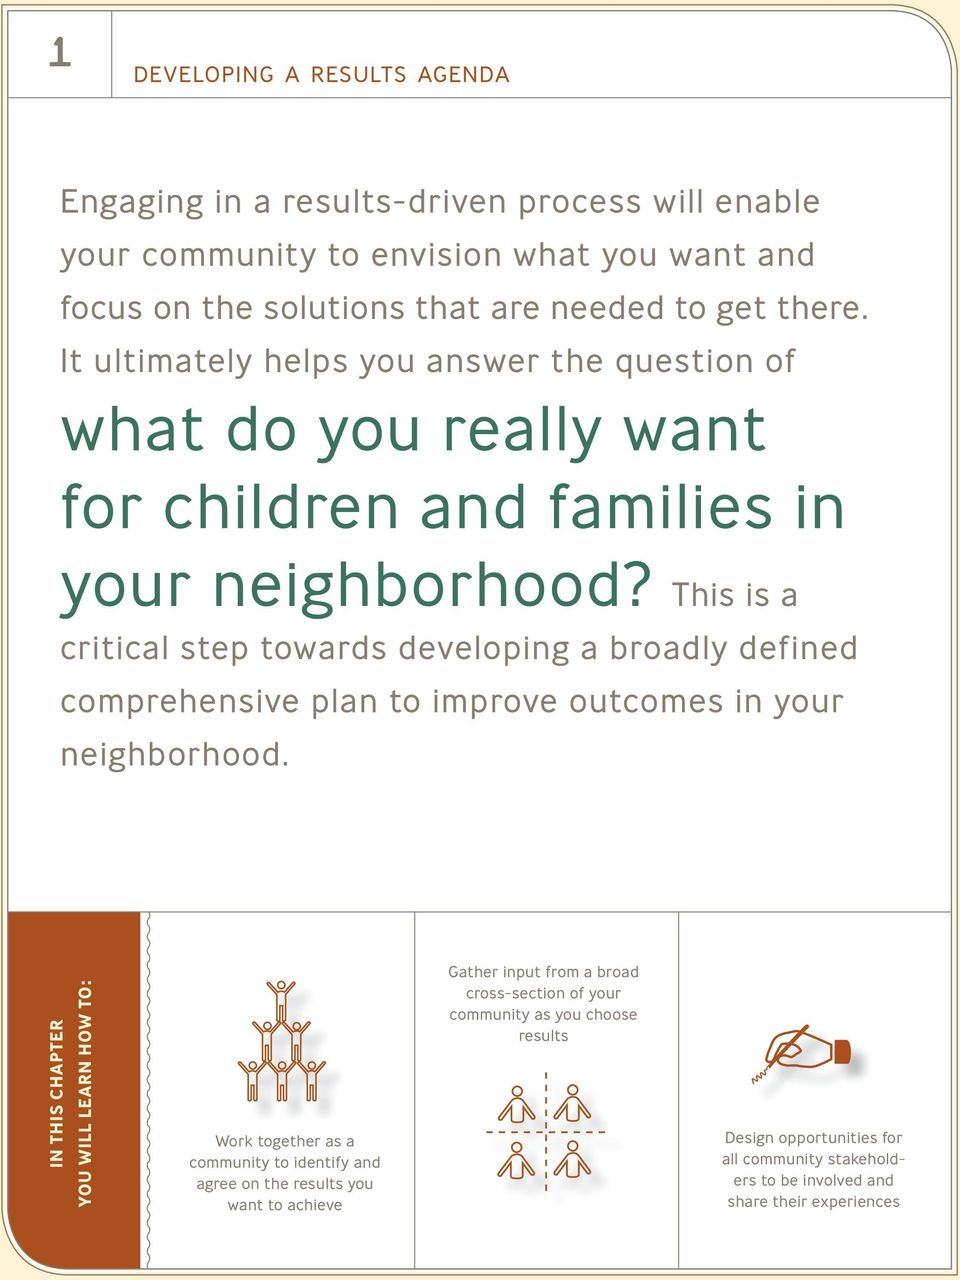 This is a critical step towards developing a broadly defined comprehensive plan to improve outcomes in your neighborhood.